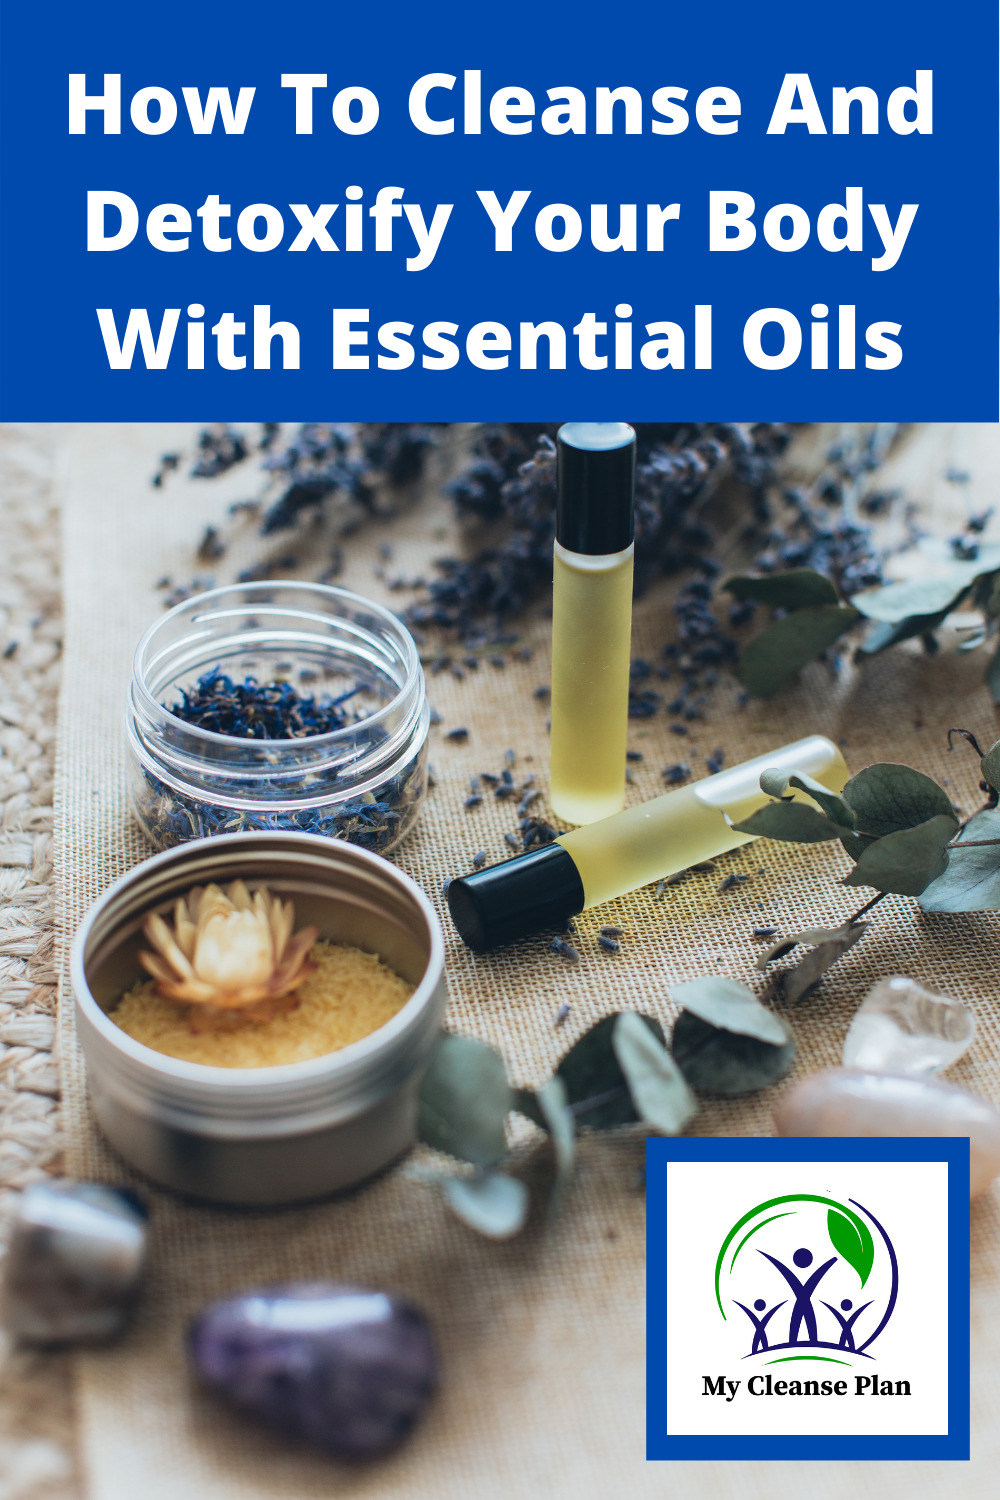 How To Cleanse And Detoxify Your Body With Essential Oils